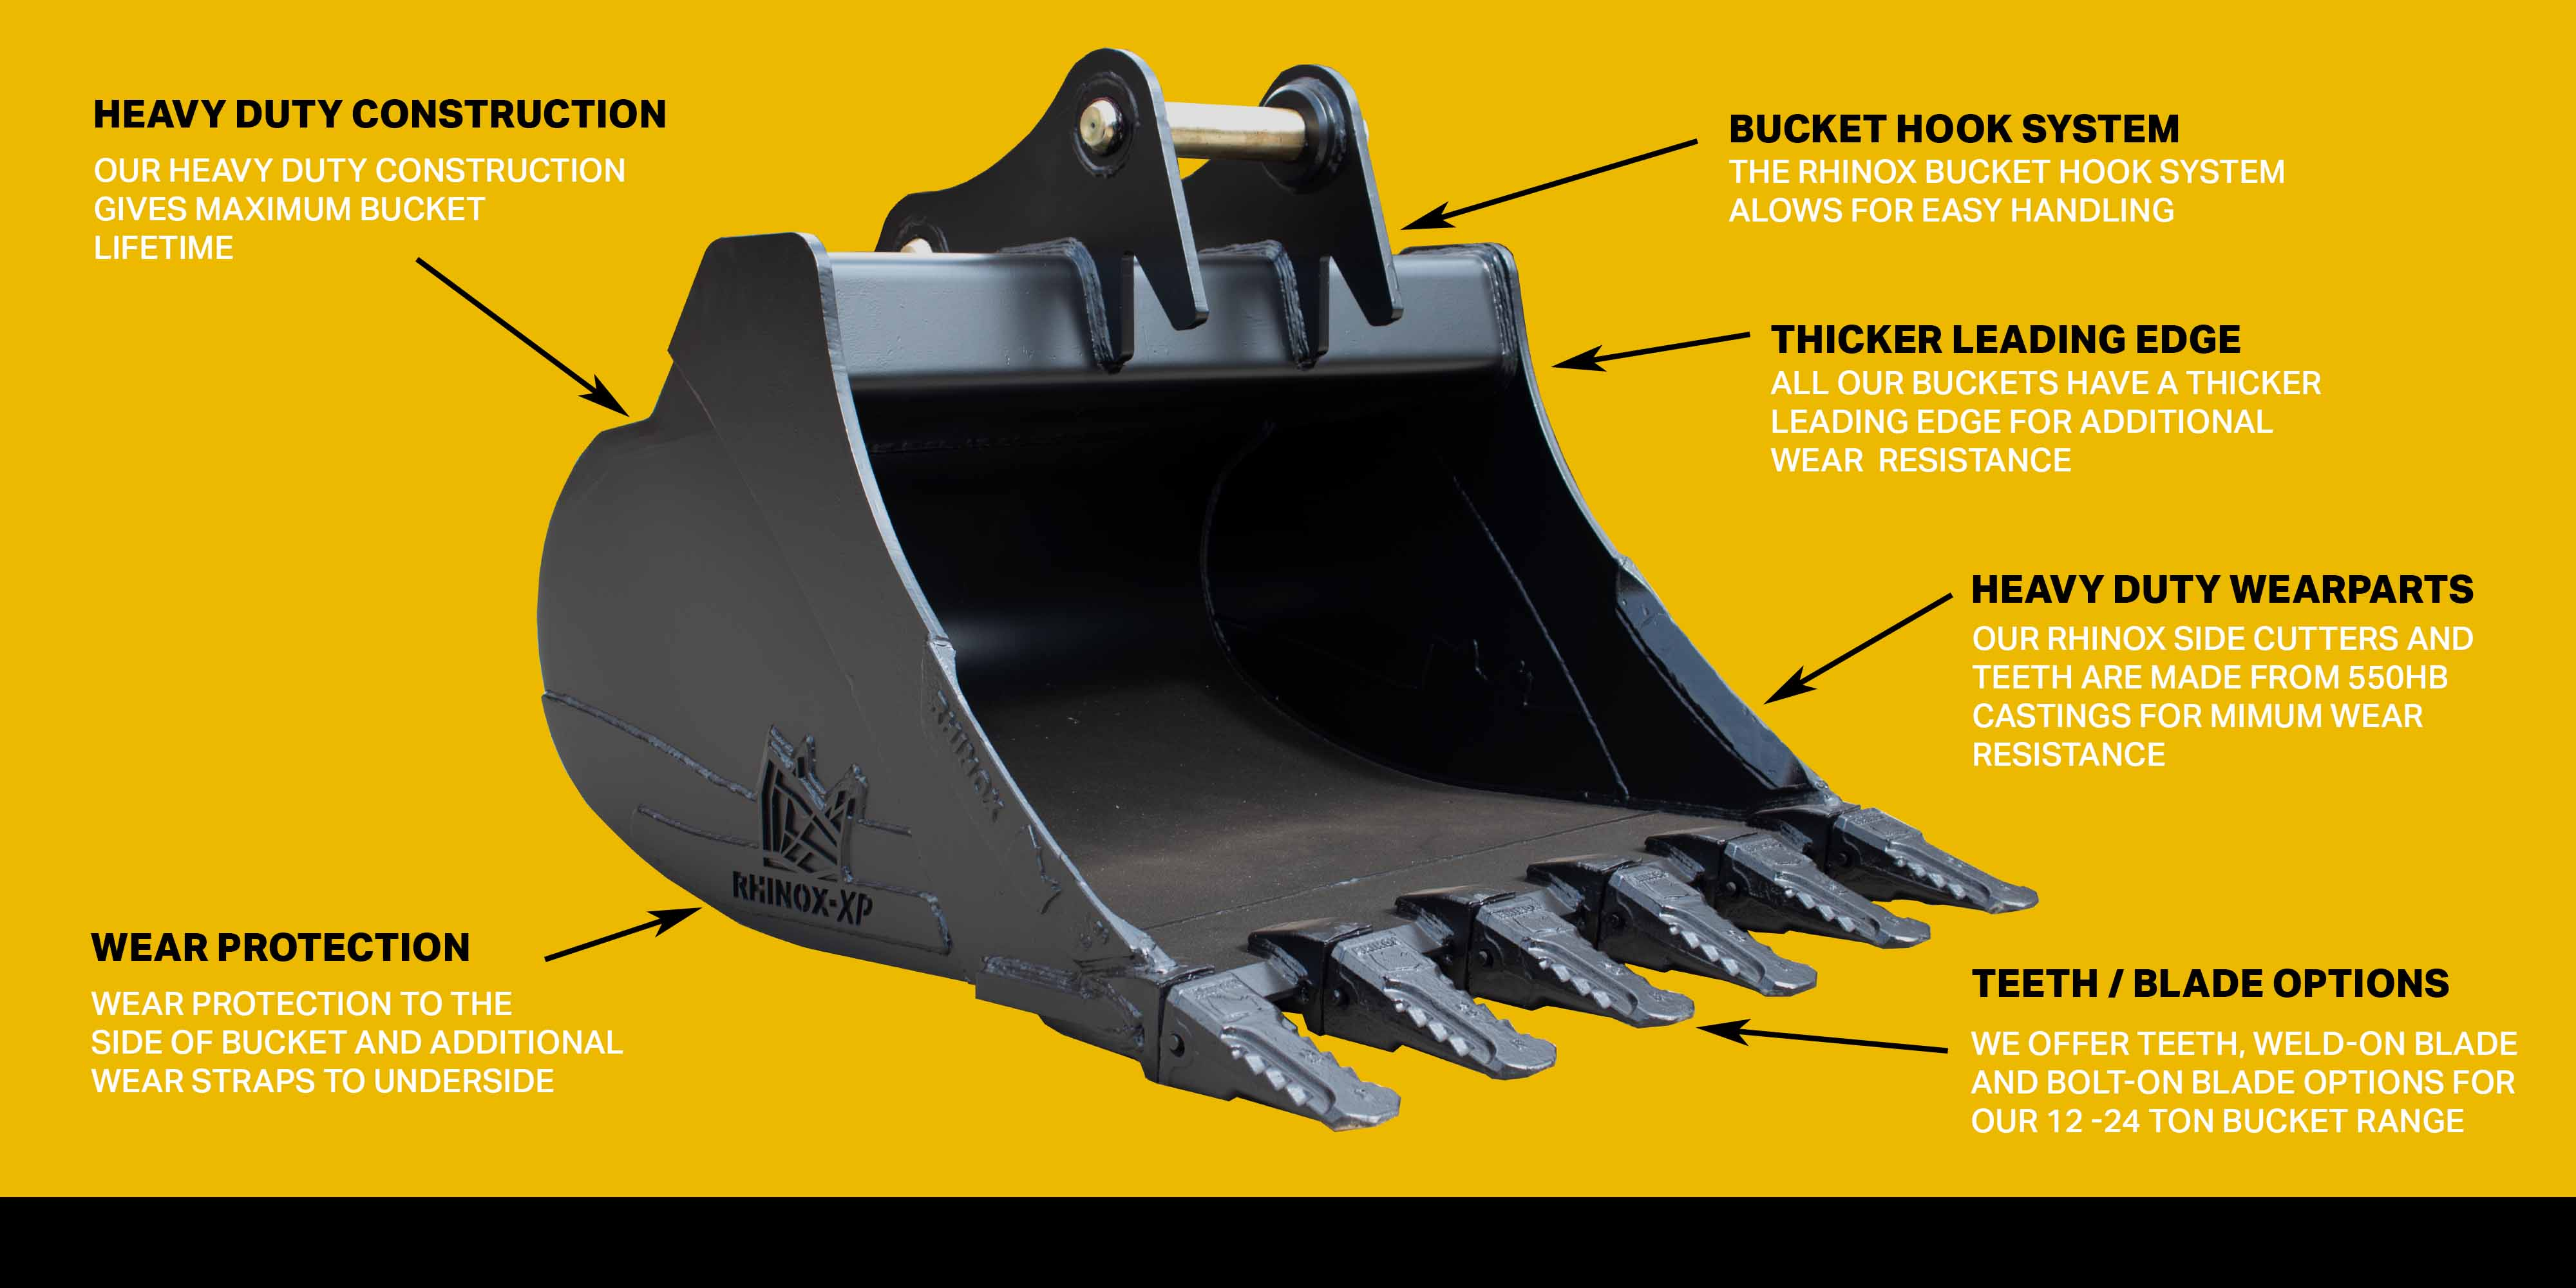 rhinox 12 - 25 ton bucket features